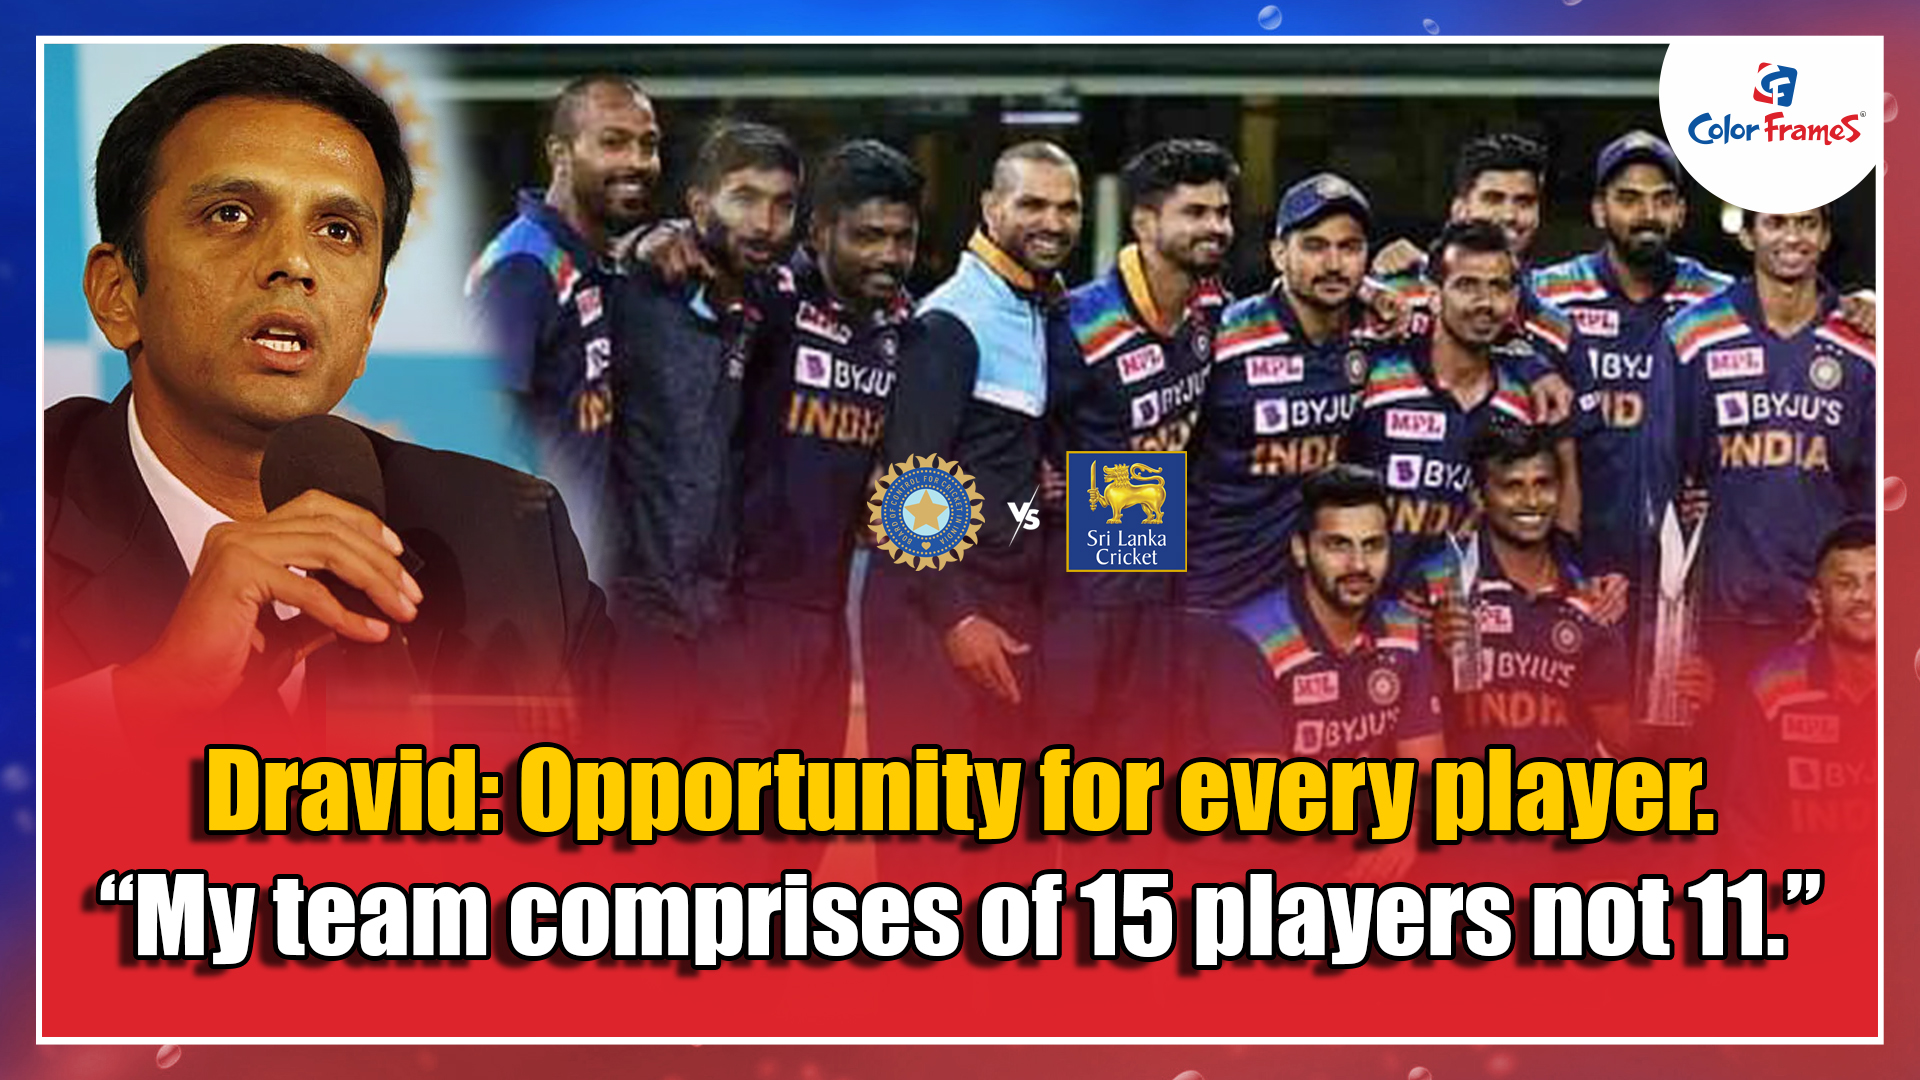 """Dravid: Opportunity for every player. """"My team comprises of 15 players not 11."""""""